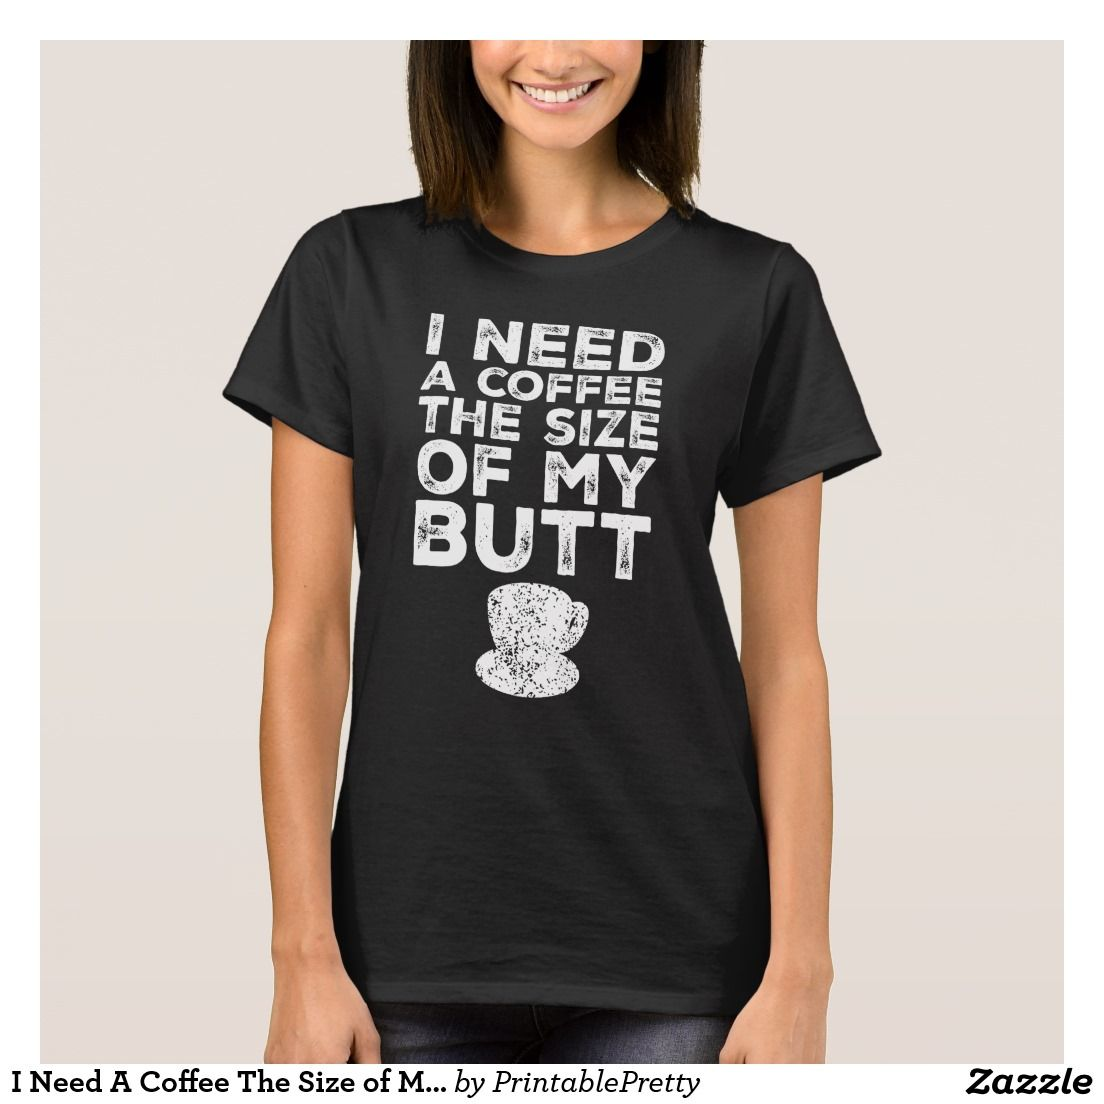 Zazzle t shirt design size - I Need A Coffee The Size Of My Butt Funny Quote Sayings Graphic Tee Shirt Design